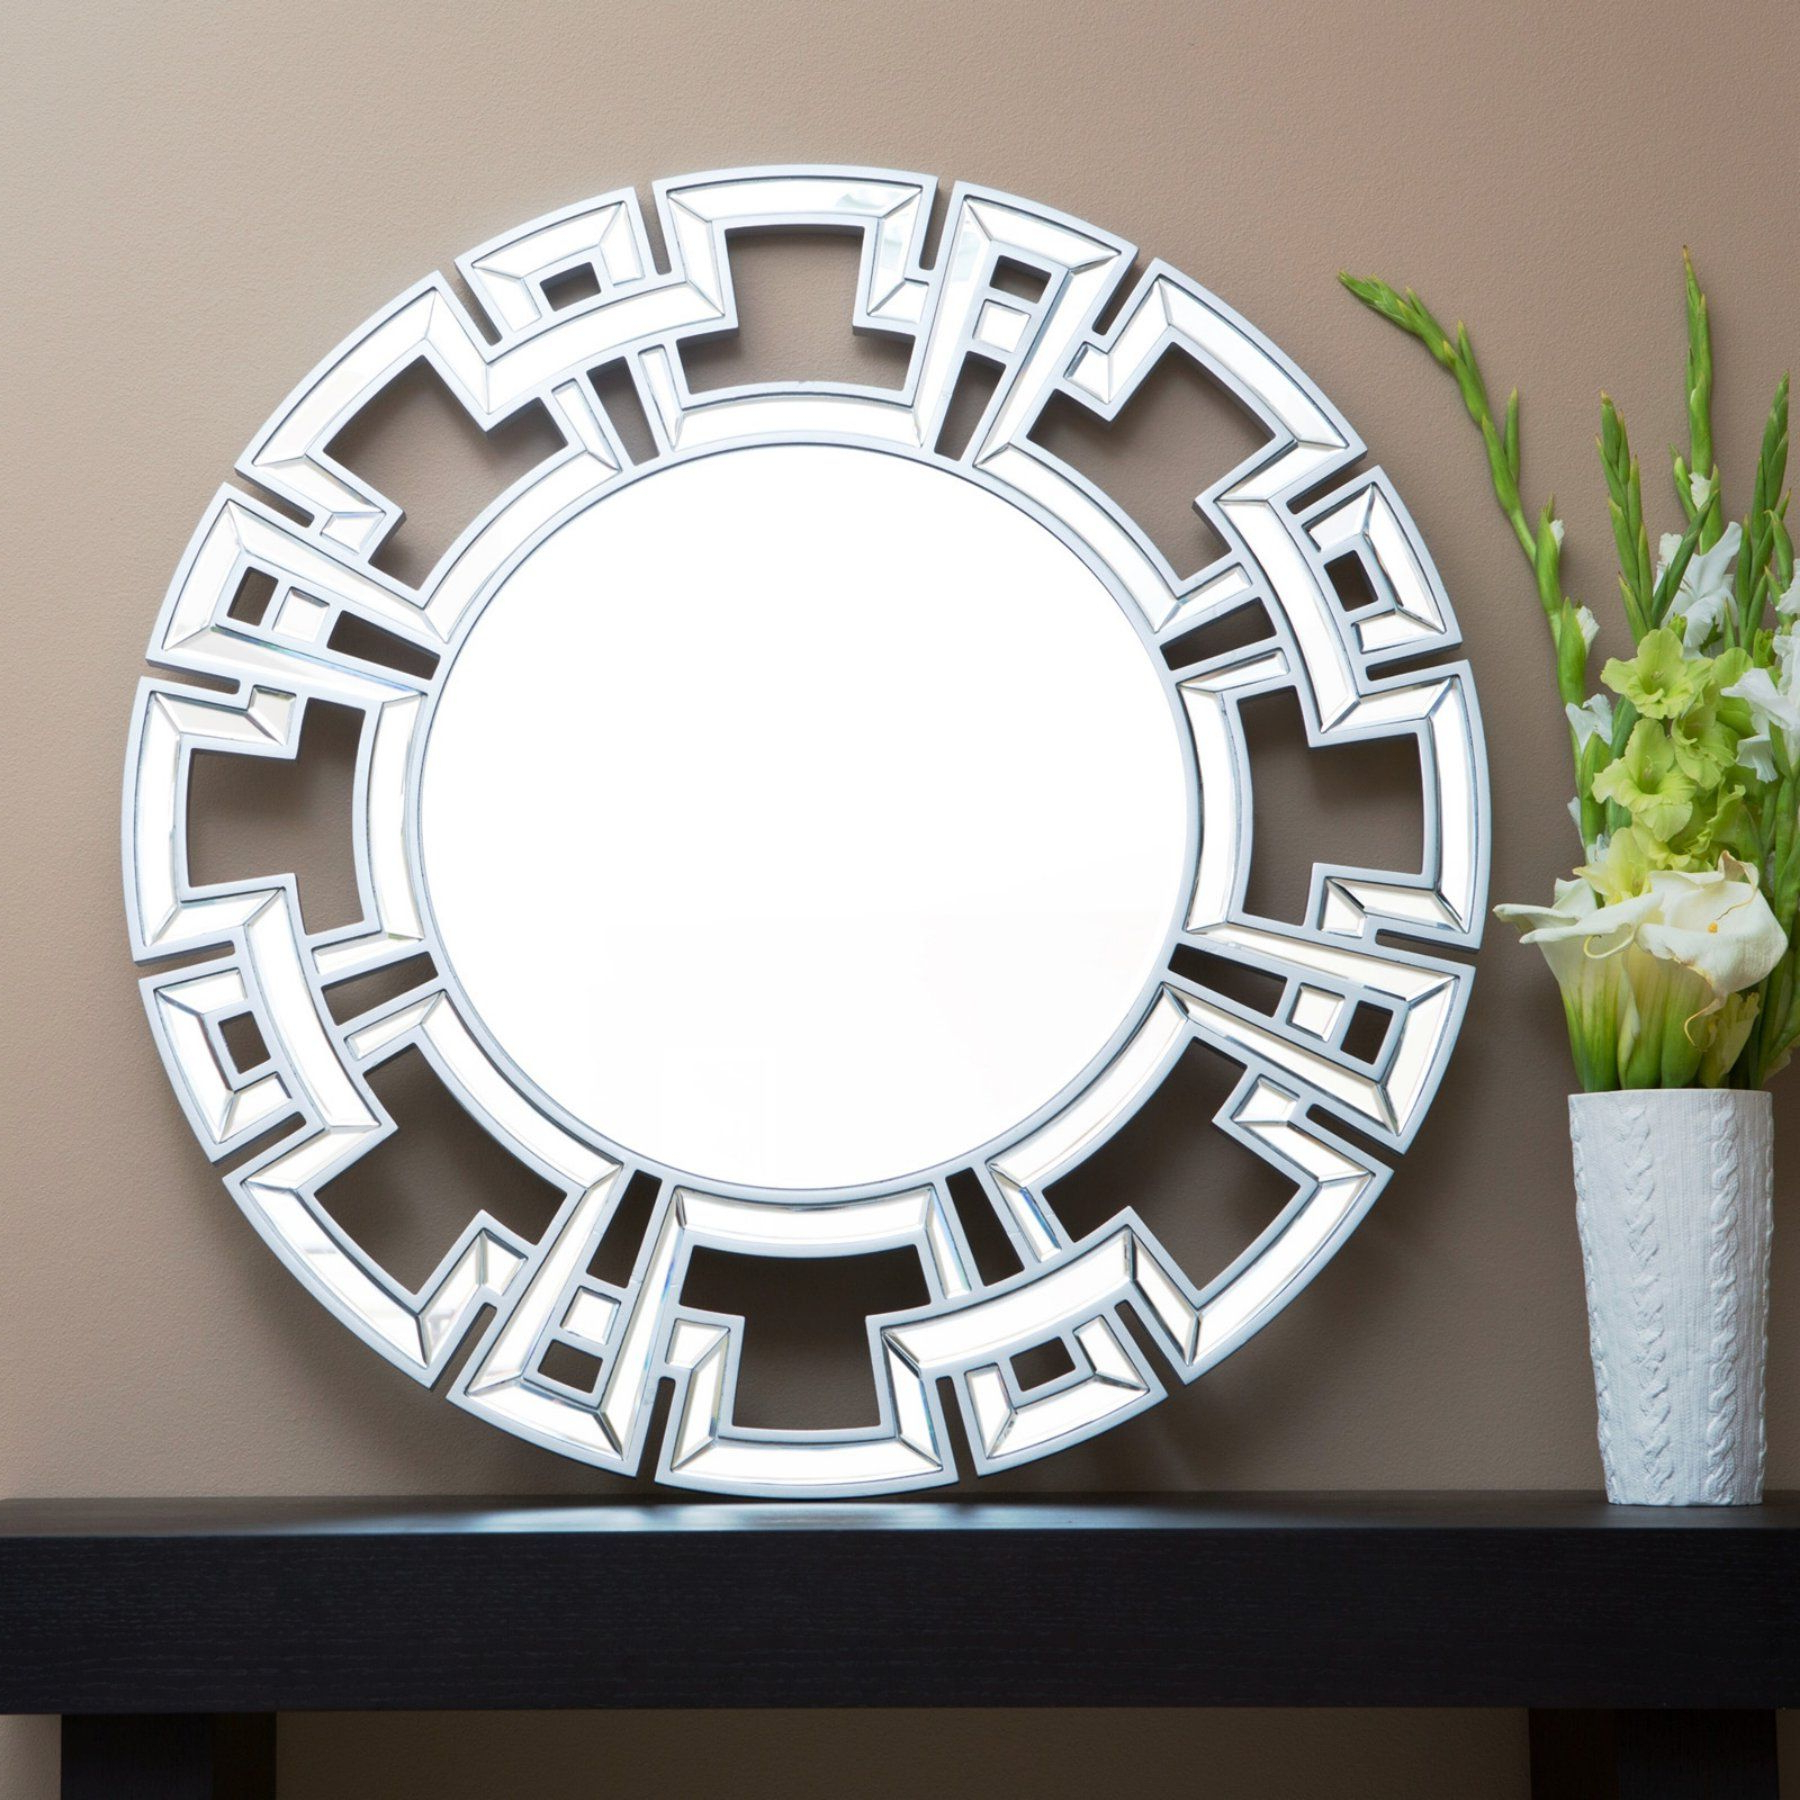 Tata Openwork Round Wall Mirrors For Best And Newest Abbyson Living Shiloh Round Wall Mirror – Tm Gc 8214 Mir Sil (View 14 of 20)